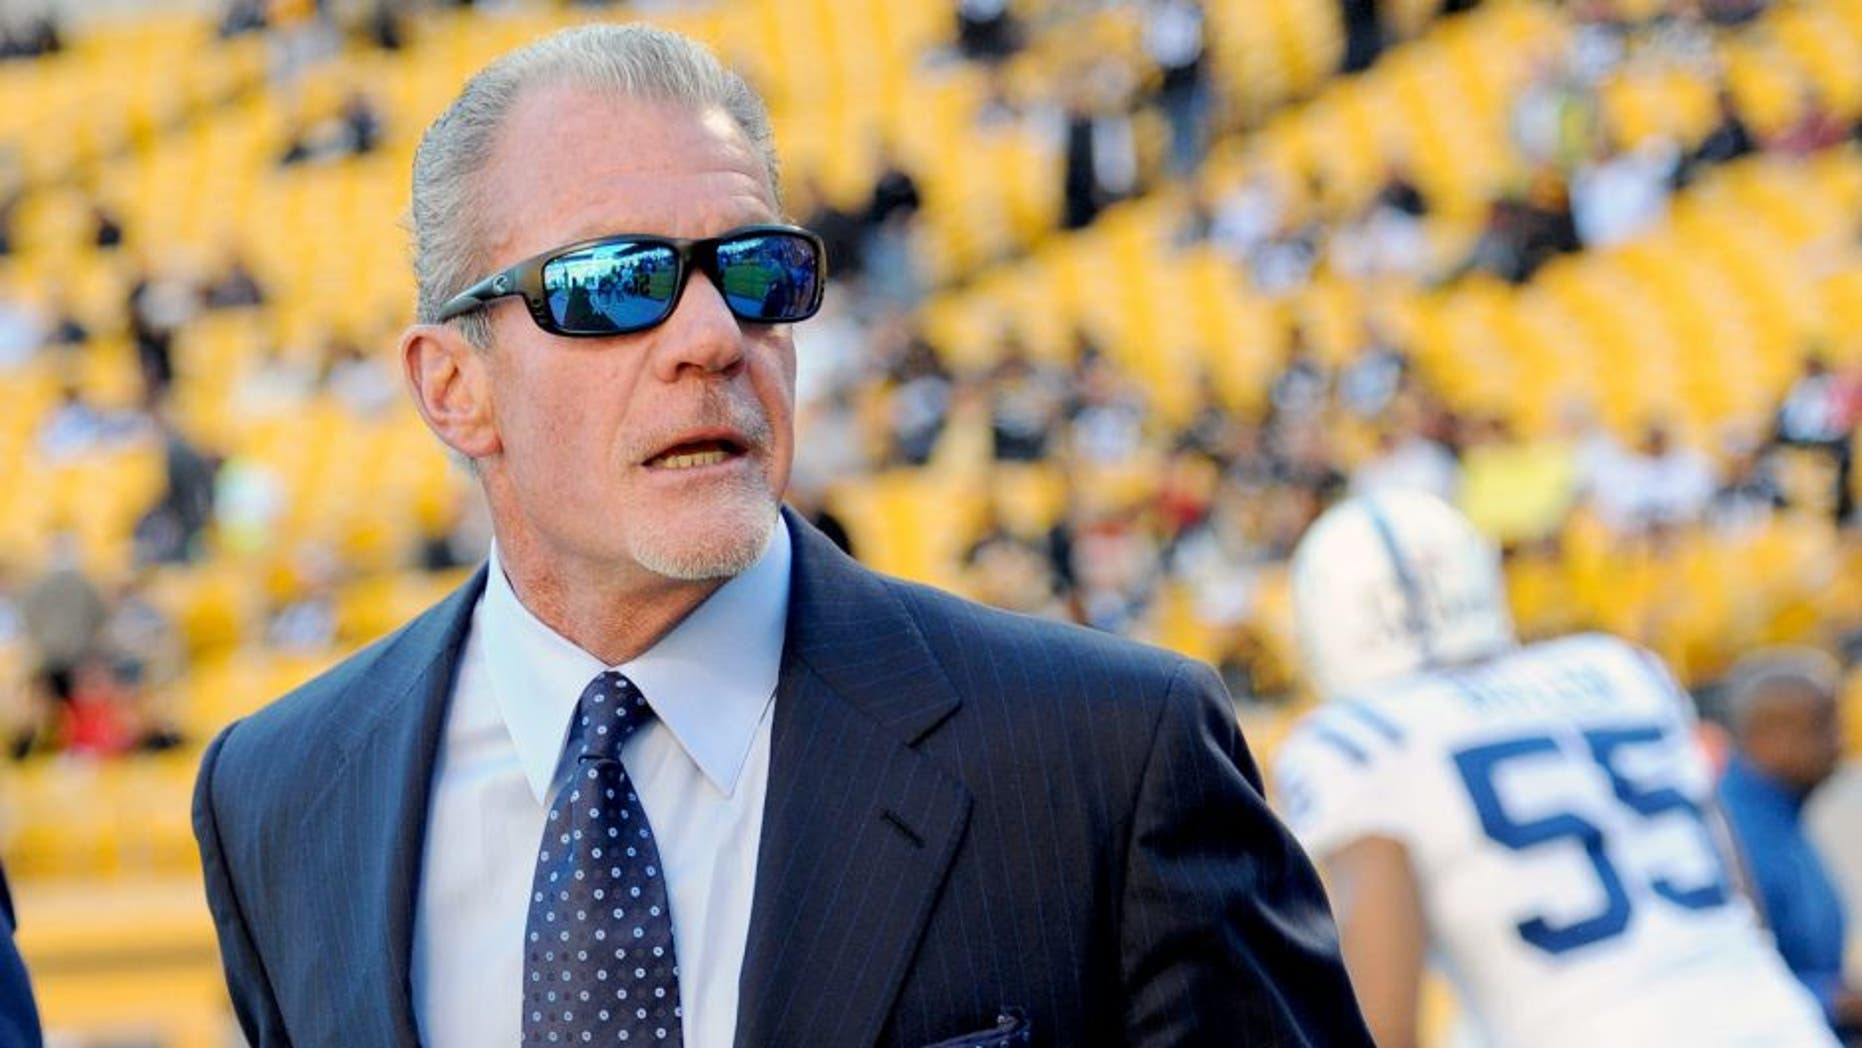 PITTSBURGH, PA - OCTOBER 26: Team owner Jim Irsay of the Indianapolis Colts looks on from the sideline before a game against the Pittsburgh Steelers at Heinz Field on October 26, 2014 in Pittsburgh, Pennsylvania. The Steelers defeated the Colts 51-34. (Photo by George Gojkovich/Getty Images)